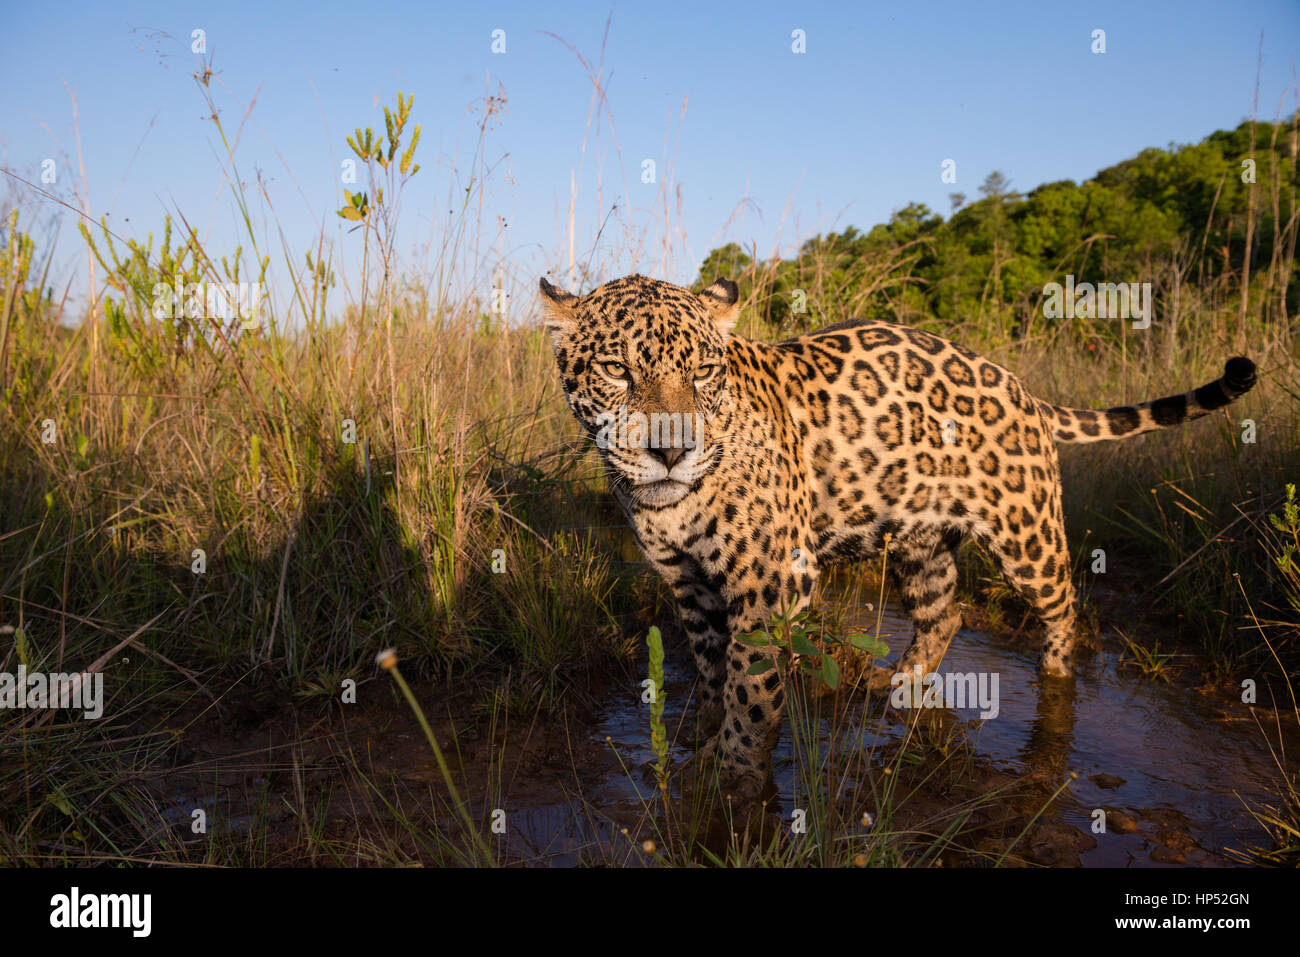 Jaguar exploring a grassland in the Cerrado - Stock Image